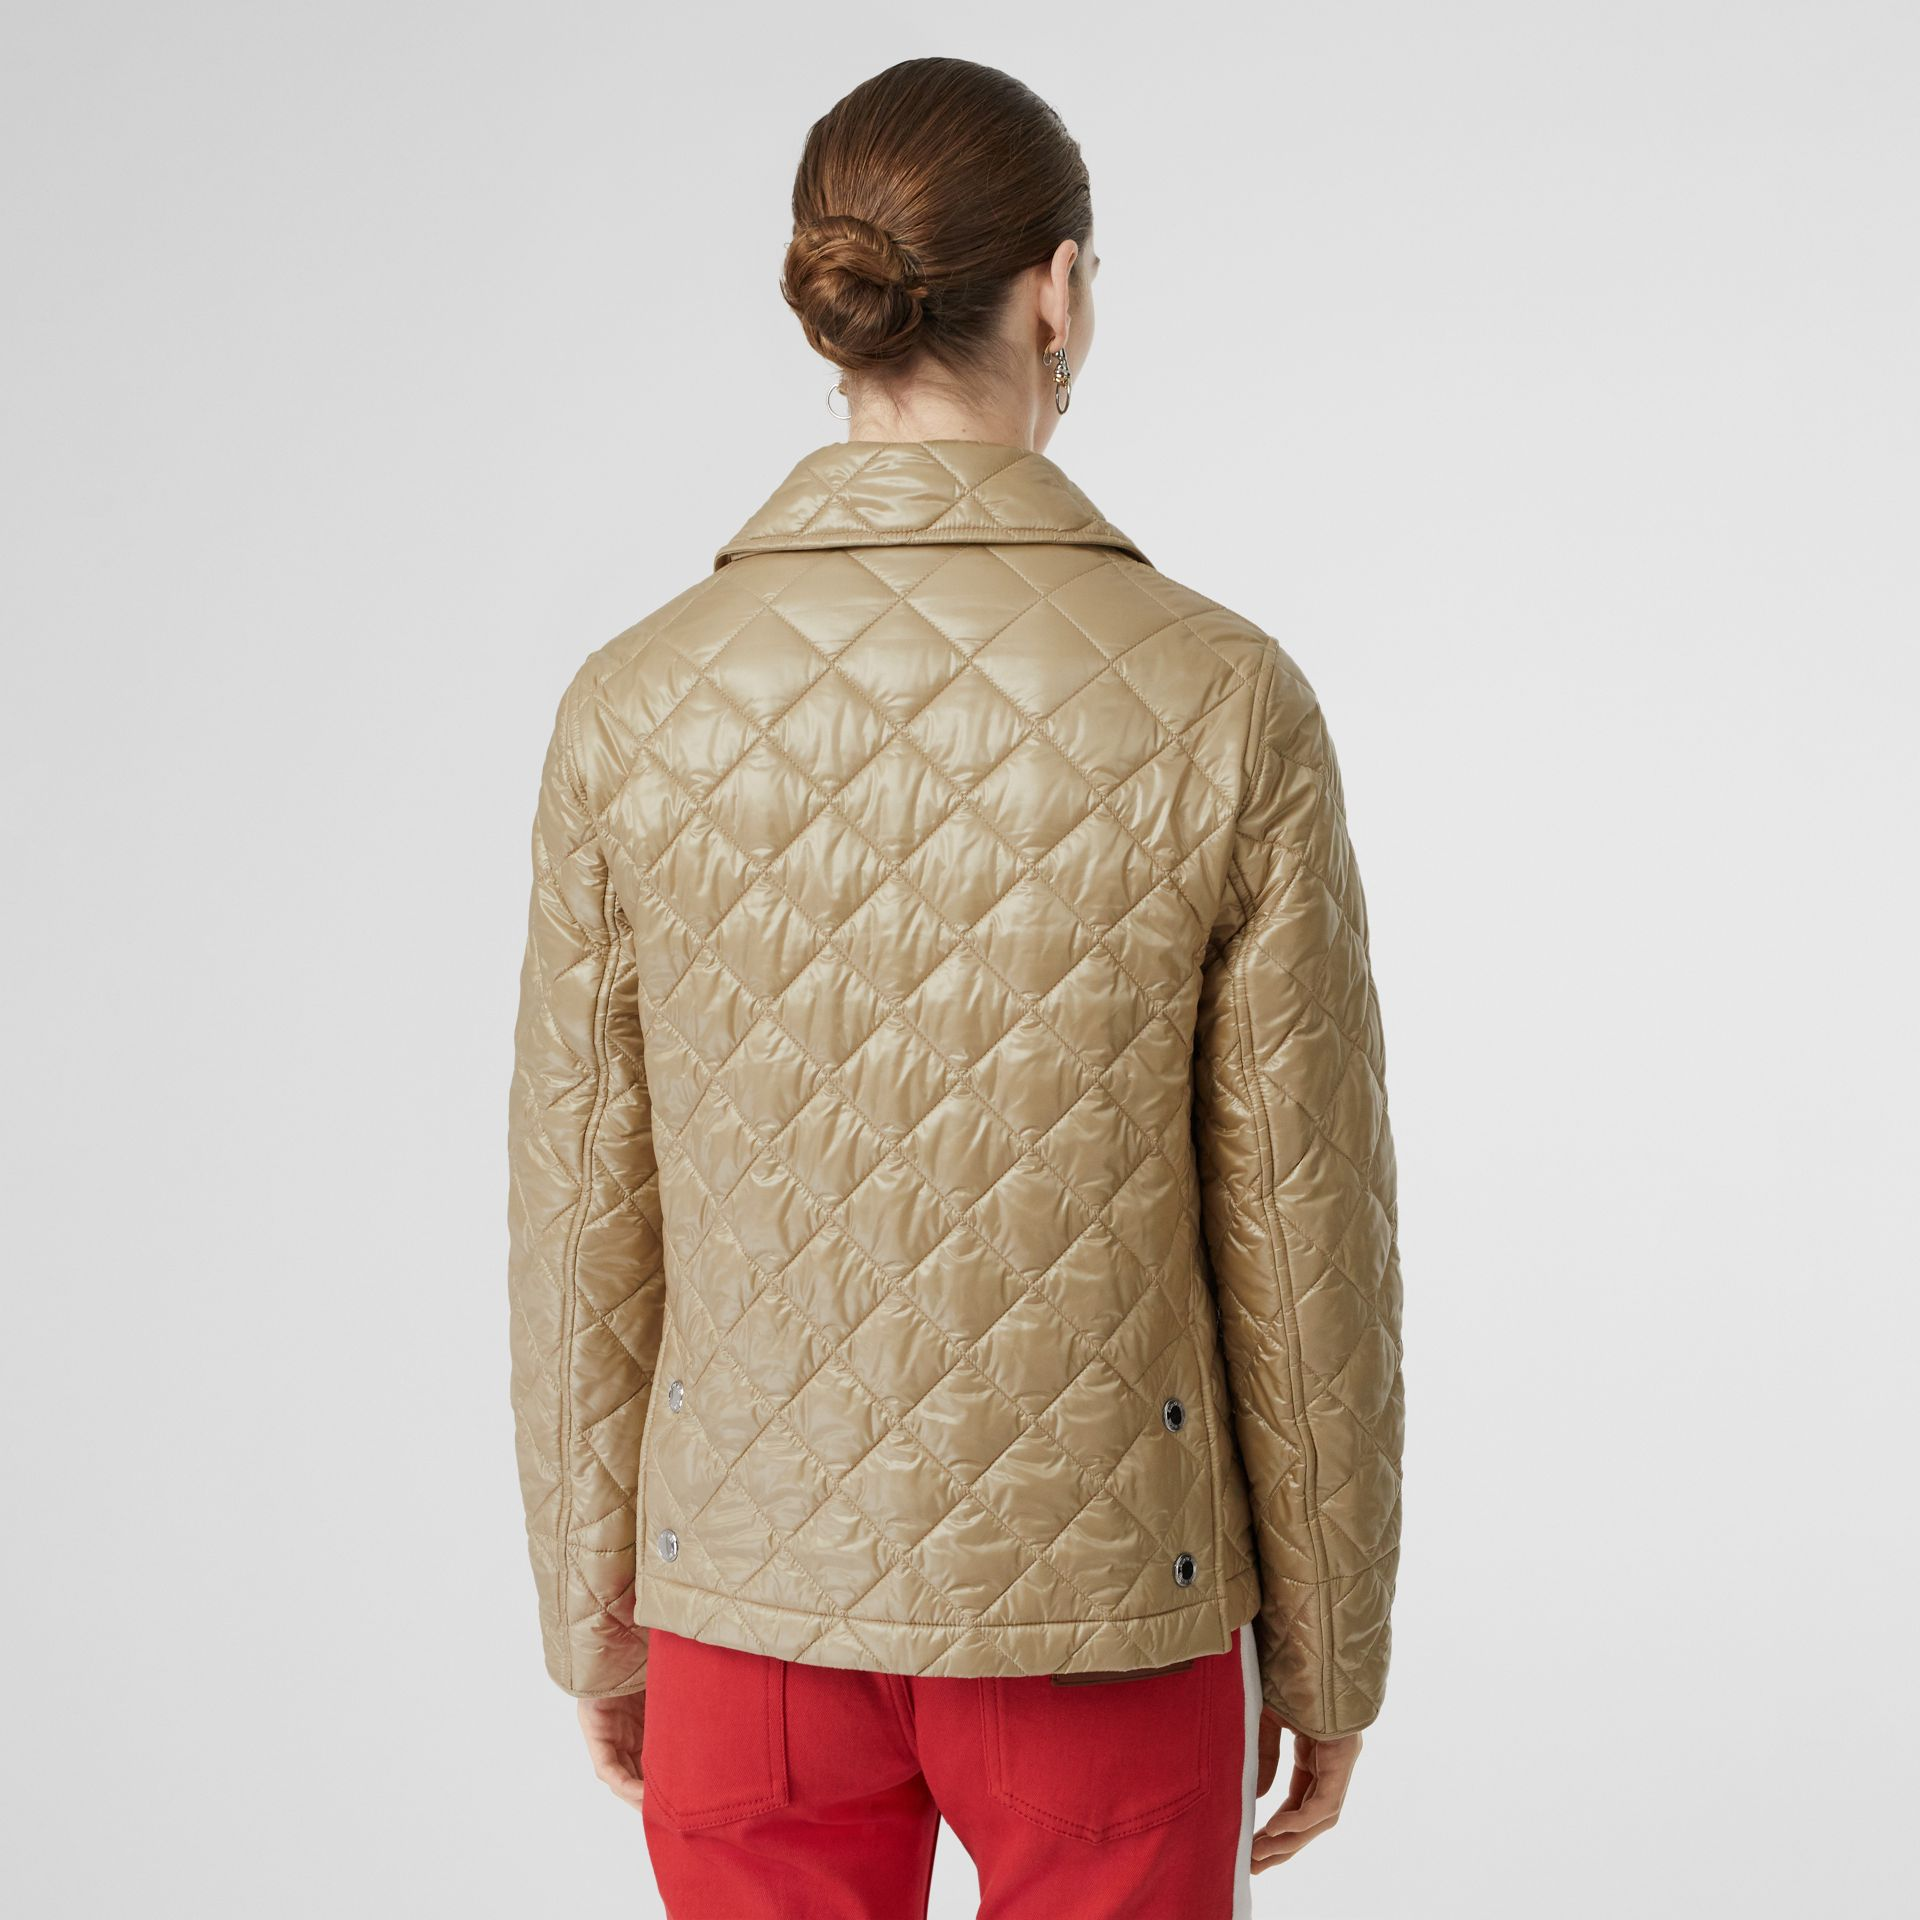 Monogram Motif Diamond Quilted Jacket in Honey - Women | Burberry United States - gallery image 2